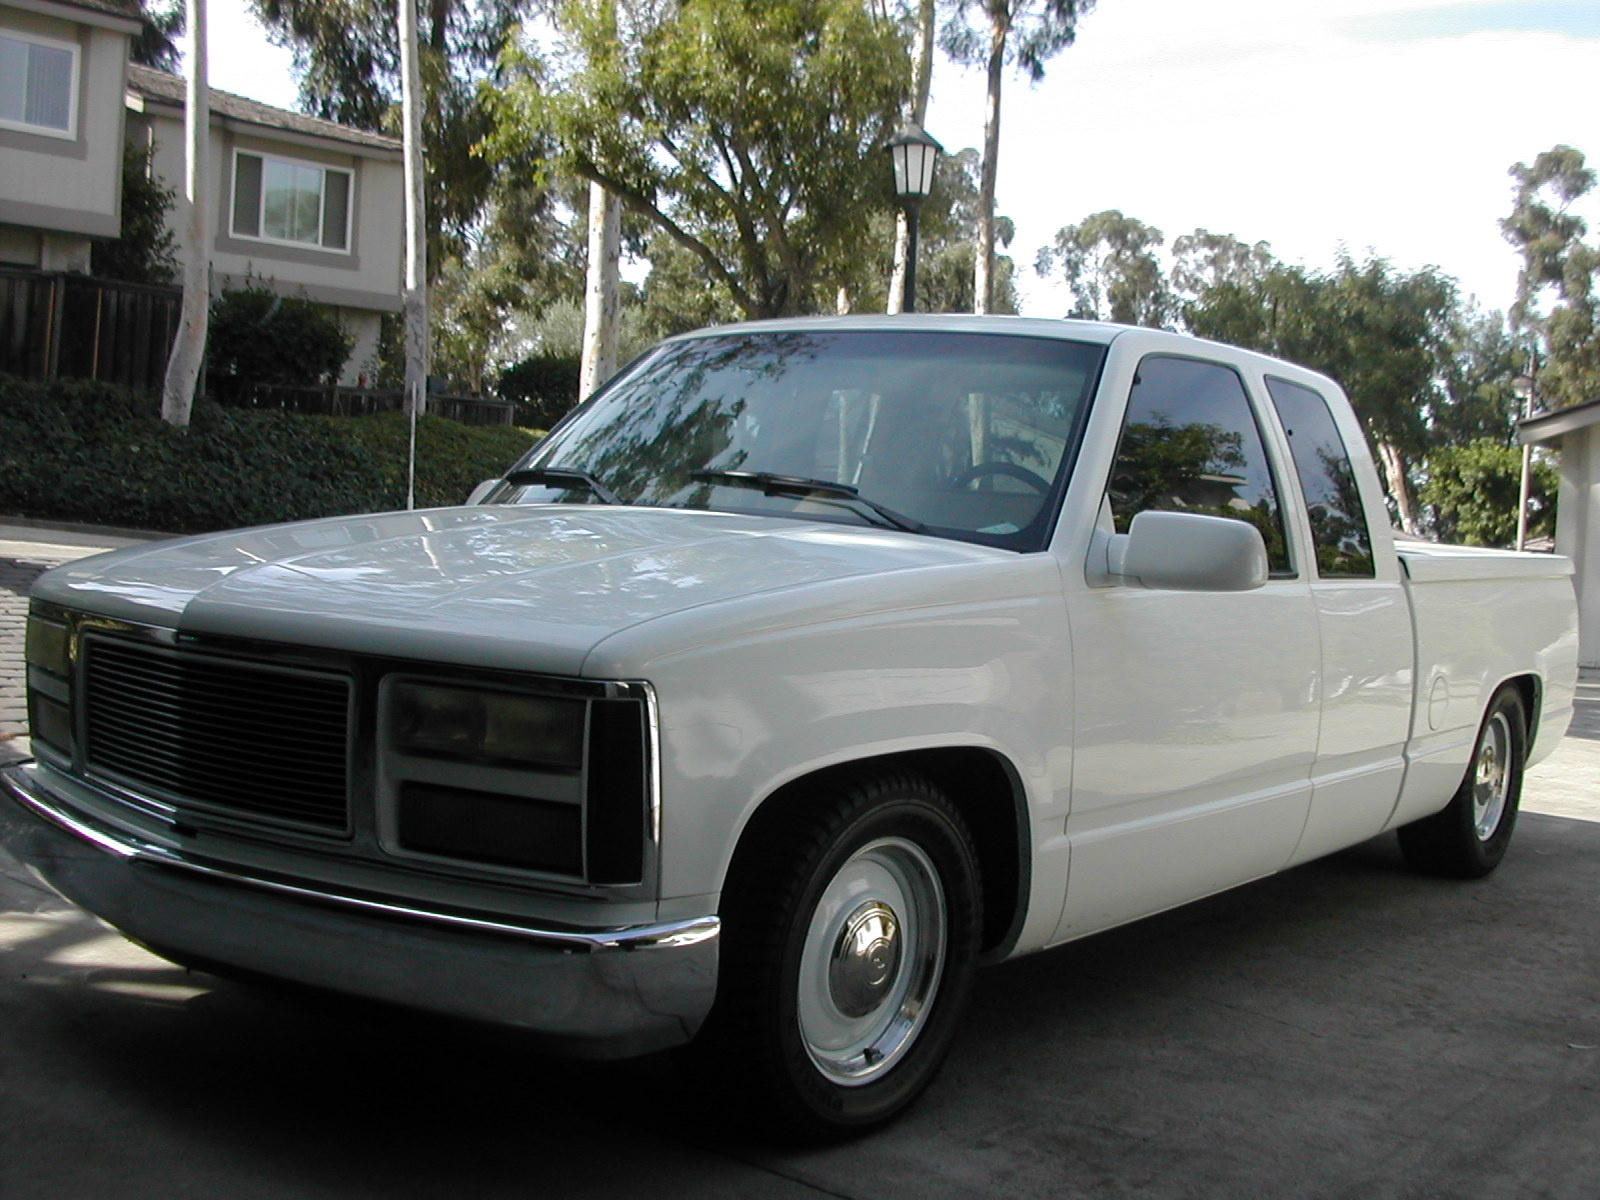 hight resolution of chevrolet c k 1500 questions it would be interesting how many miles everyone is pushing i have a cargurus